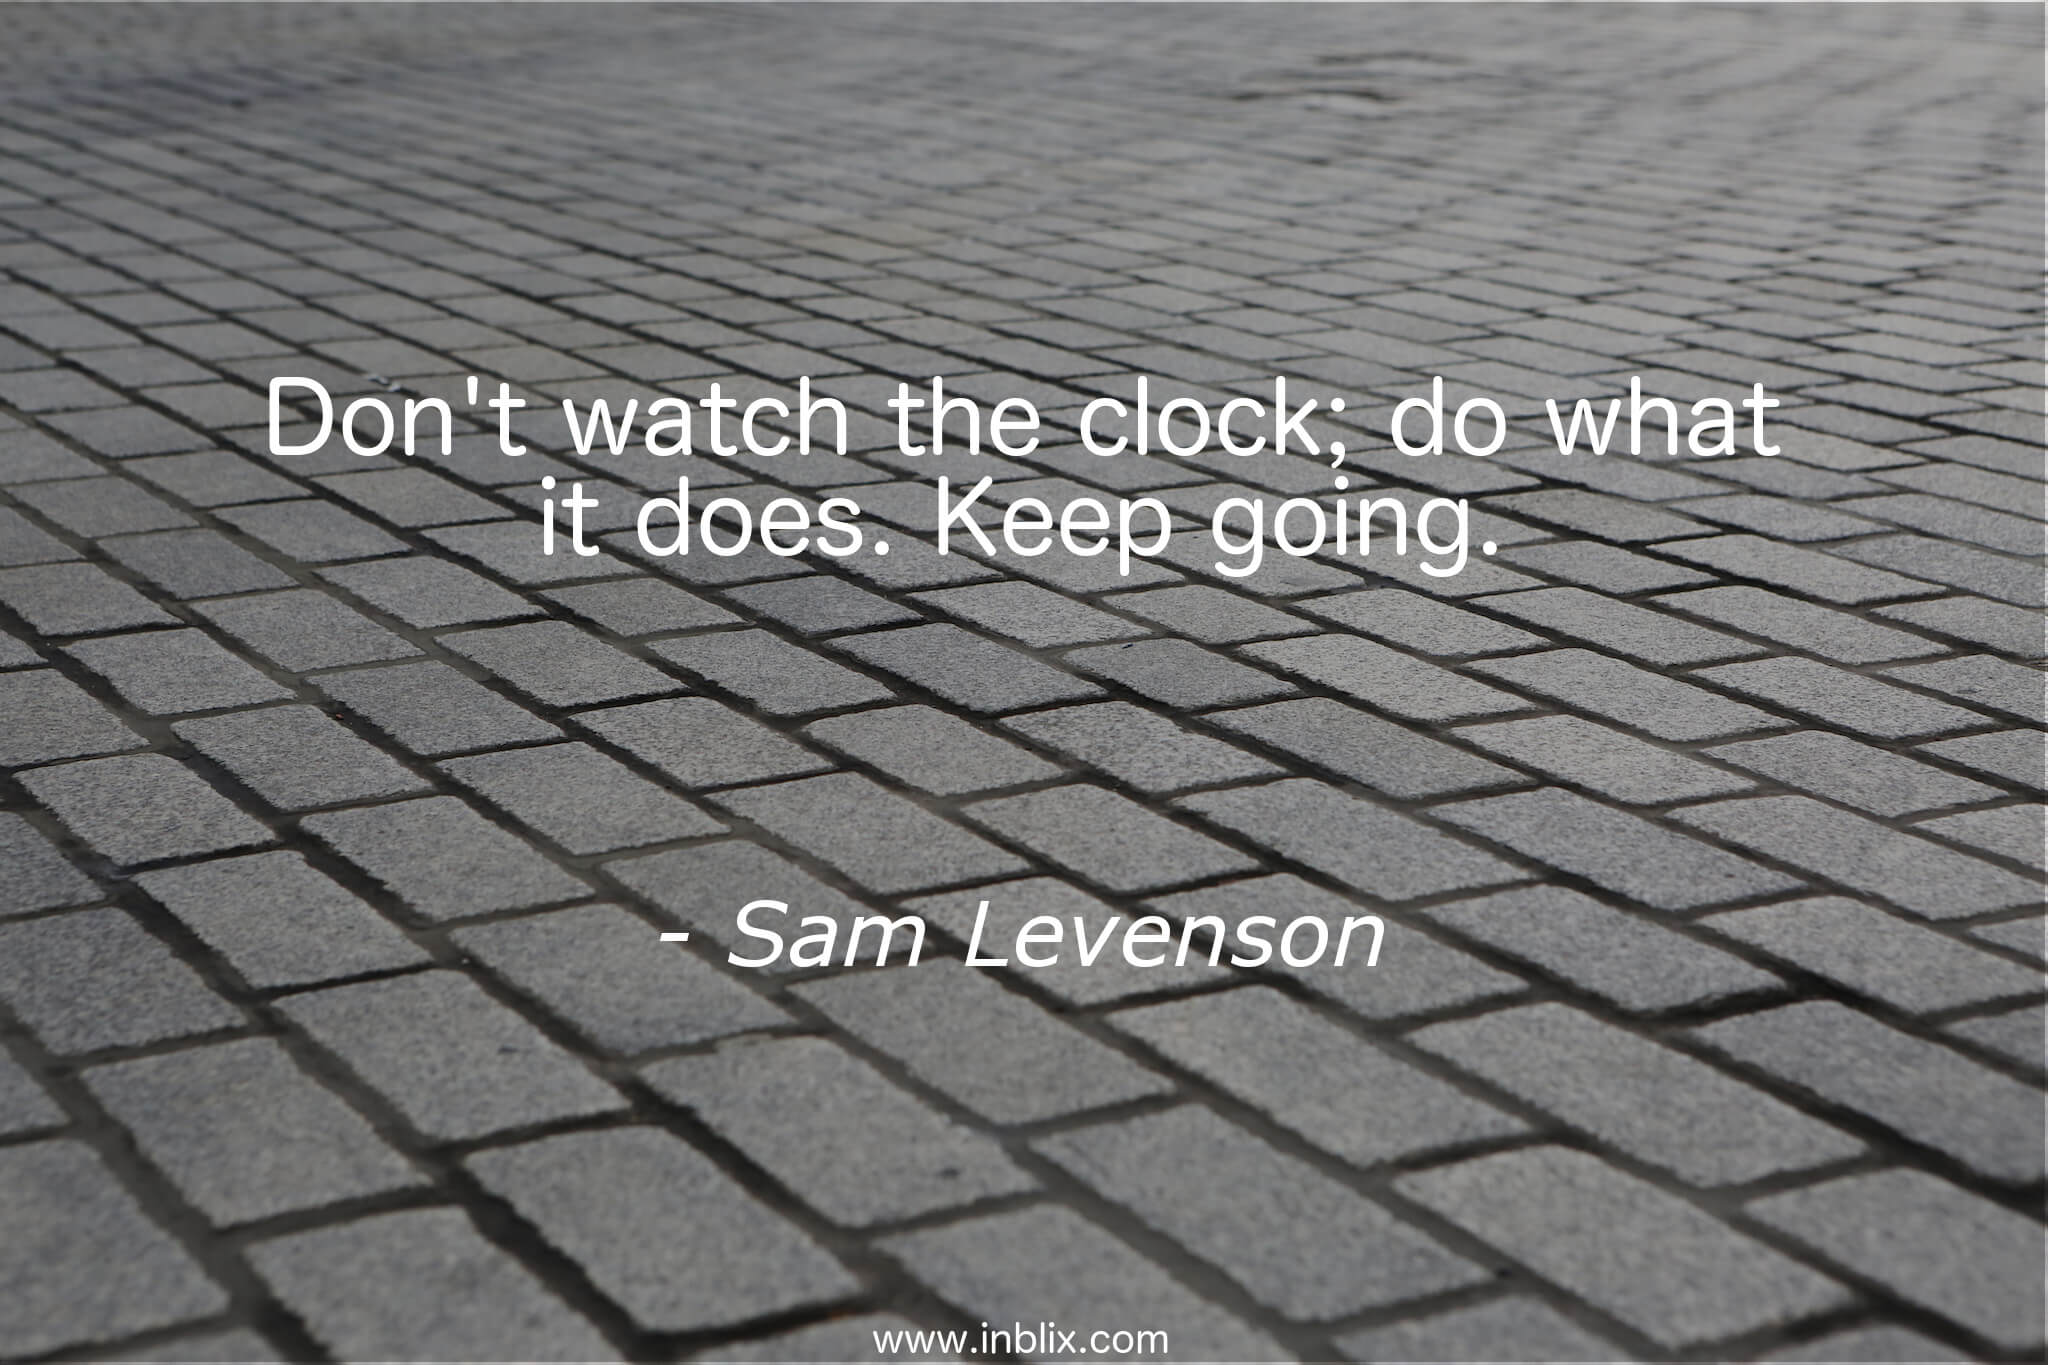 Don't watch the clock; do what is does. Keep going.